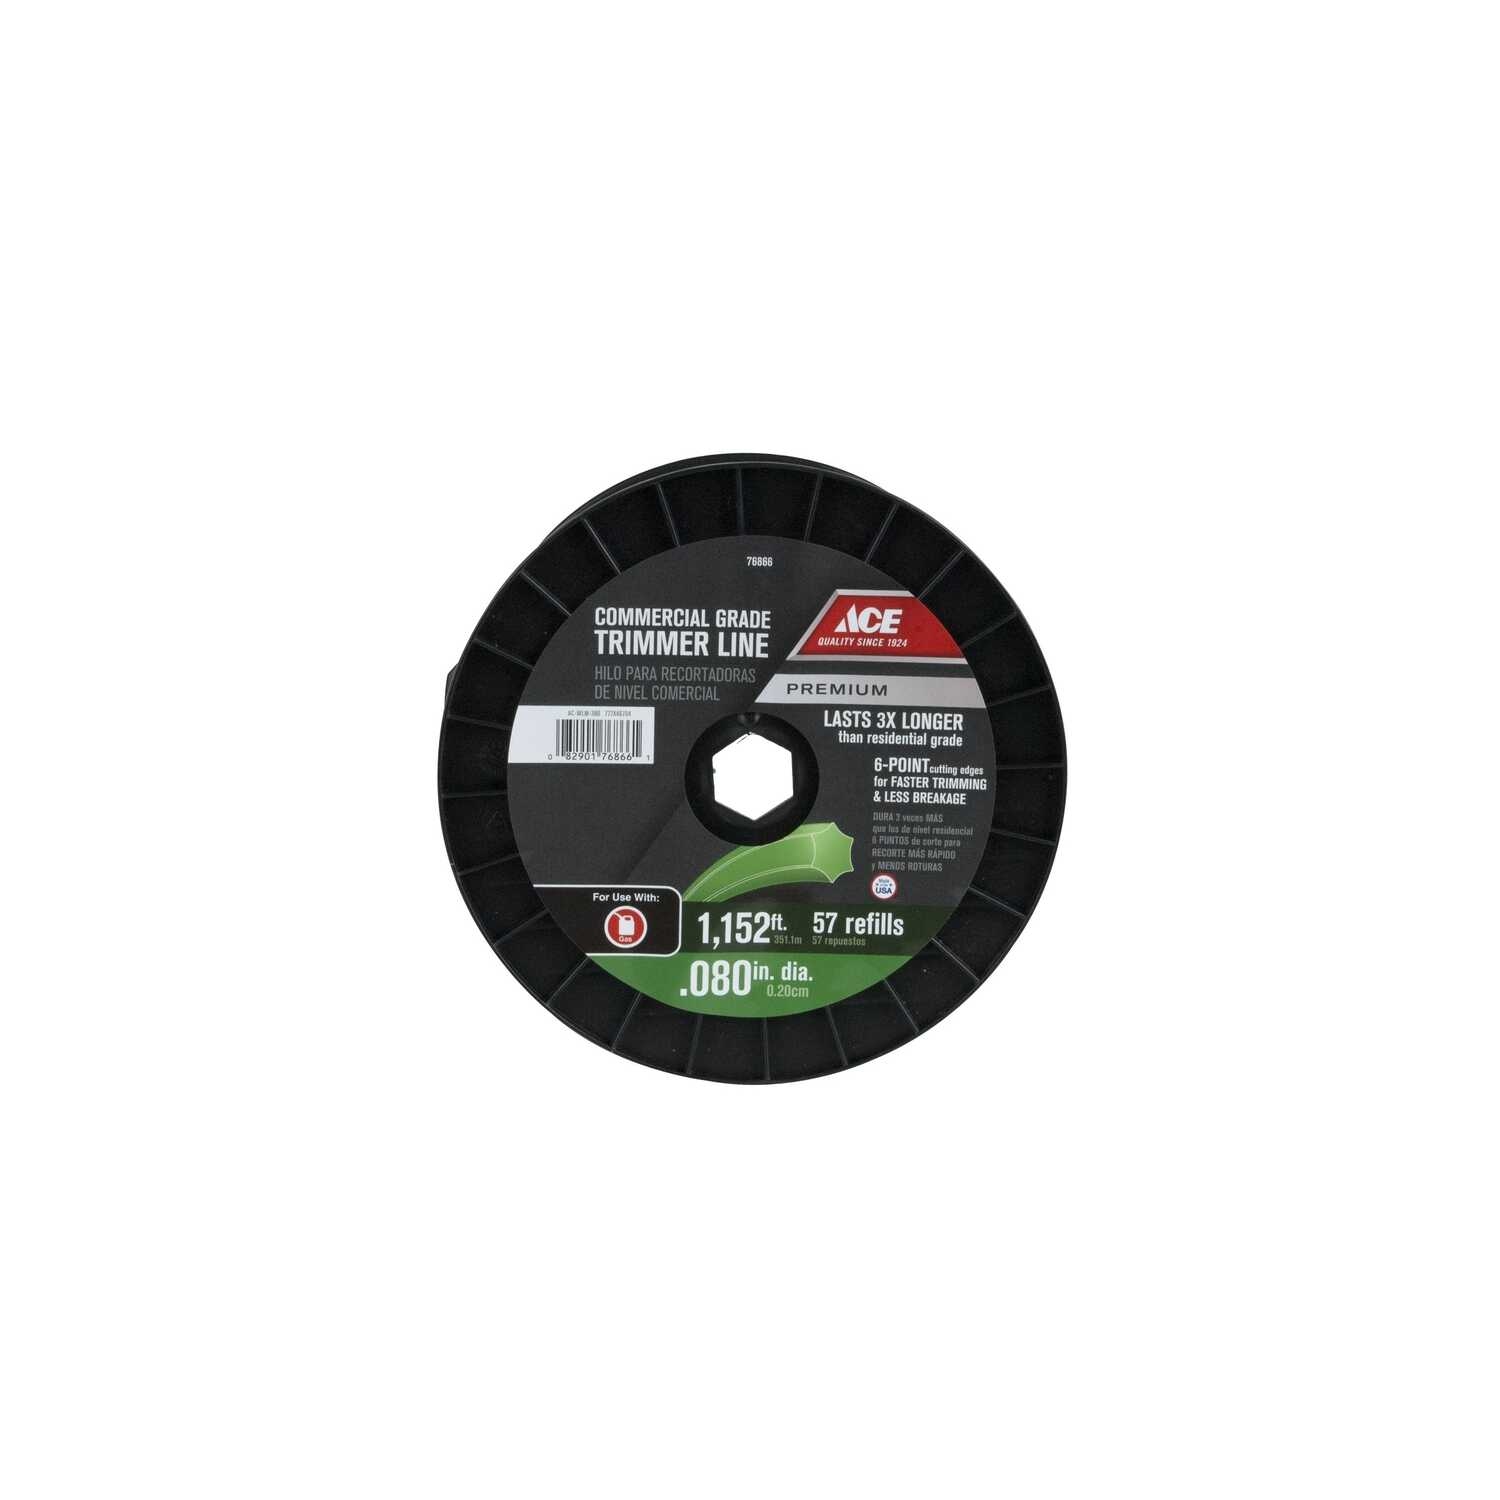 Ace  Premium  Commercial Grade  0.080 in. Dia. x 1152 ft. L Trimmer Line